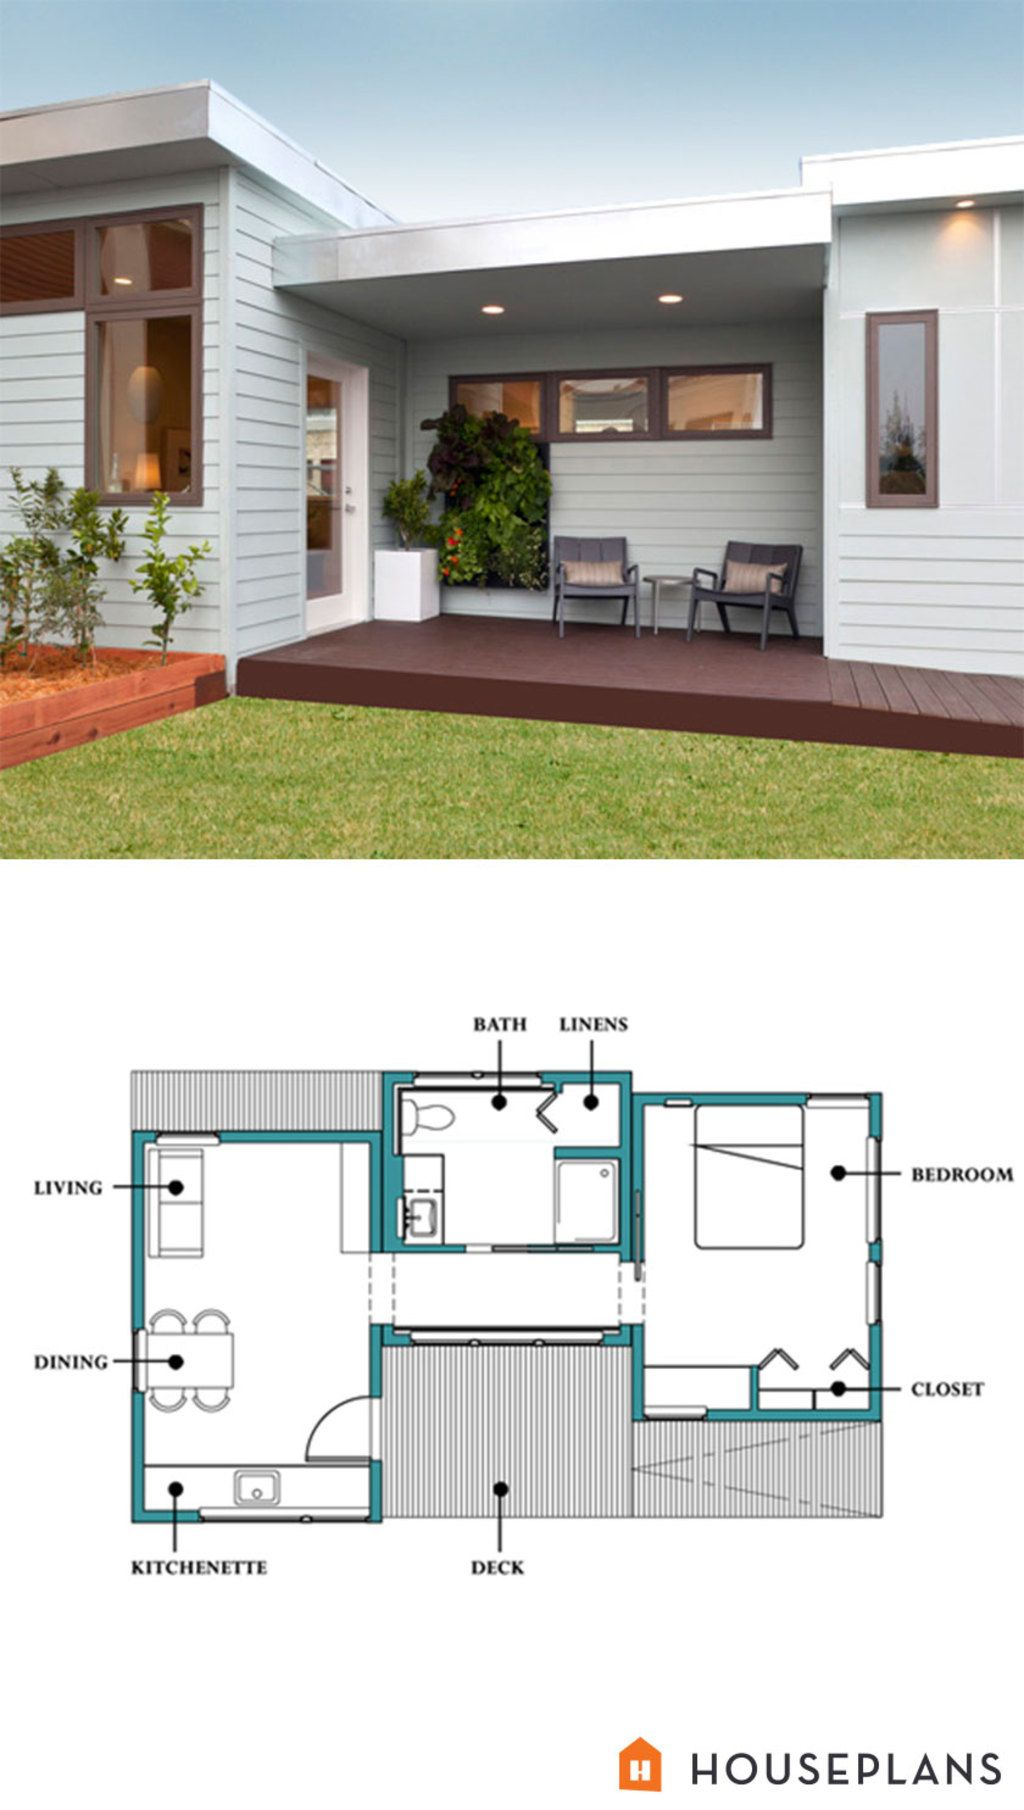 Ryan shed plans and designs for easy building  ryanshedplans in house small also rh pinterest